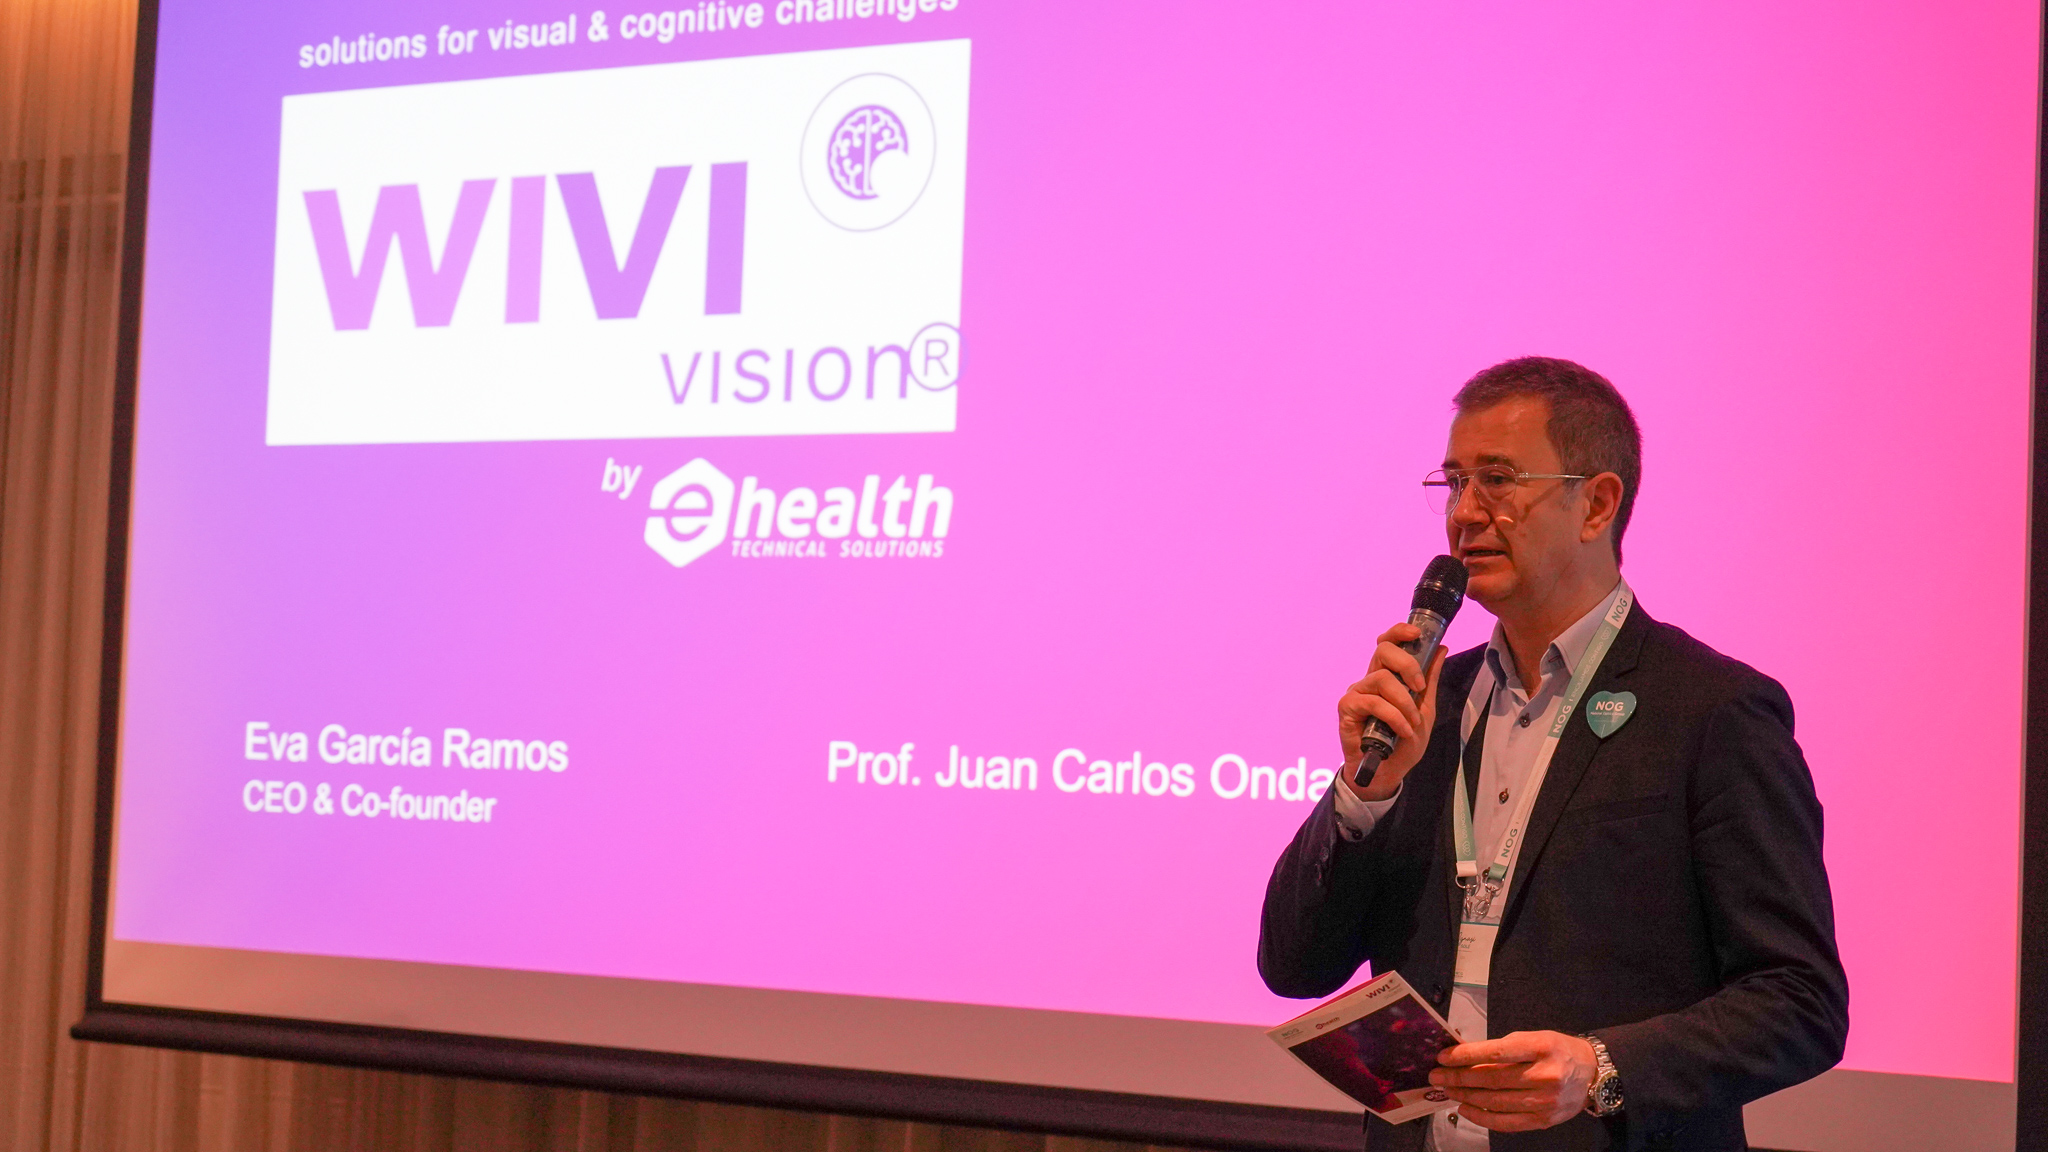 Natural Optics Group une fuerzas con WIVI VISION para el lanzamiento mundial de su software